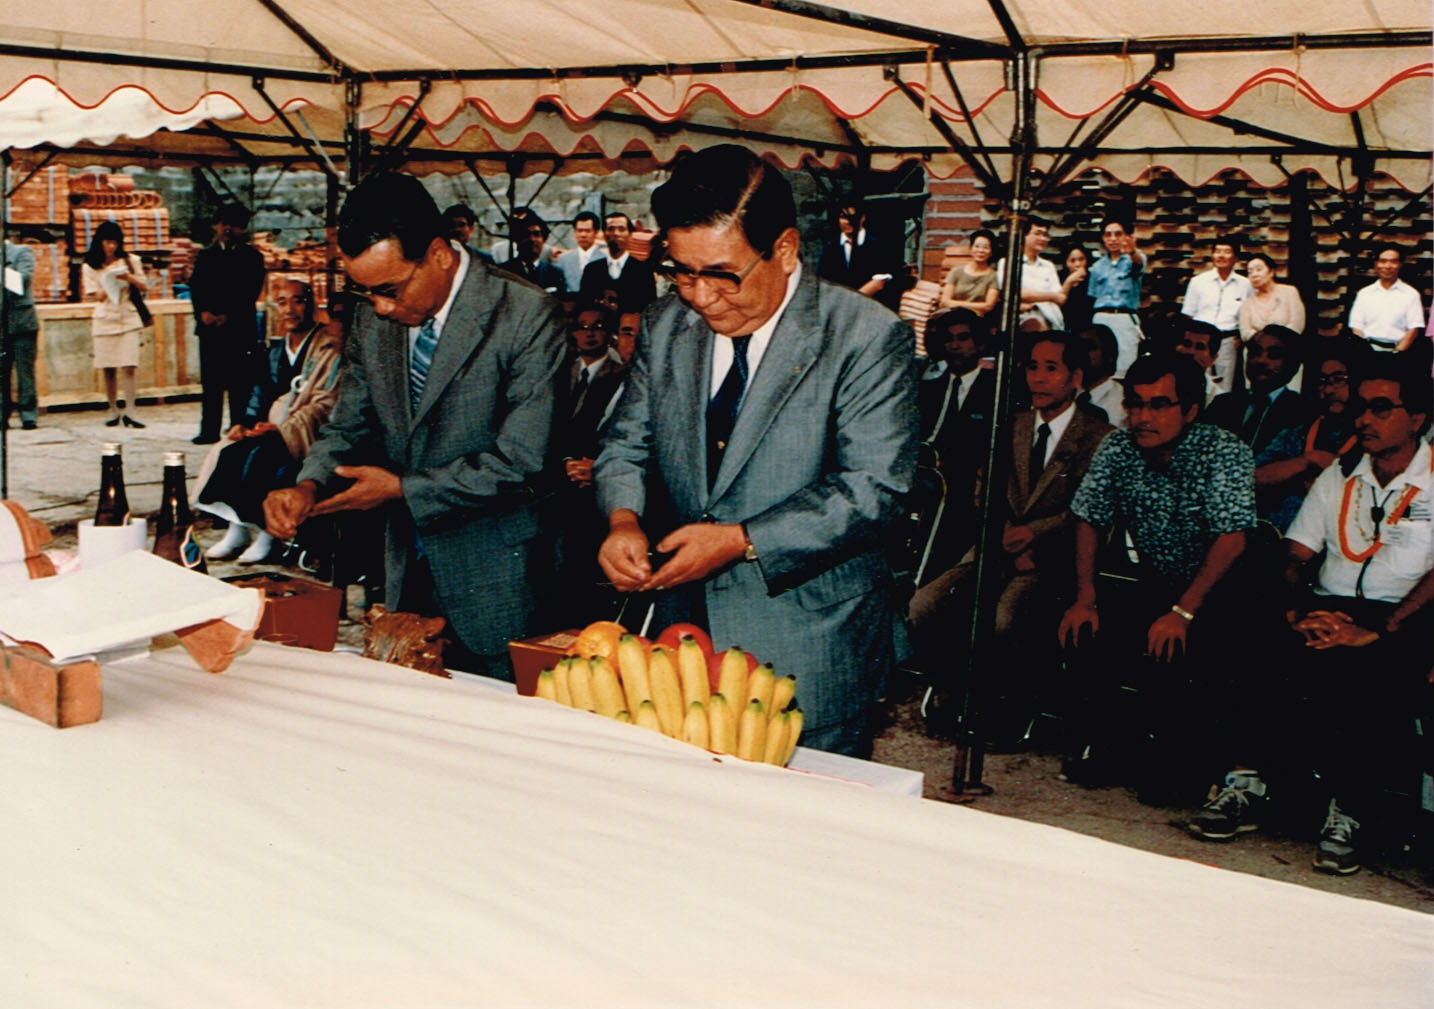 The kawara tile used for the roof of the Hawaii Okinawa Center is blessed by officials in Okinawa before being shipped to Hawai'i. HOC co-chair Gary Mijo and 1988-89 president John Tasato (seated, front row, far right) participated in the blessing ceremony in Okinawa. (Photo by Karleen Chinen)